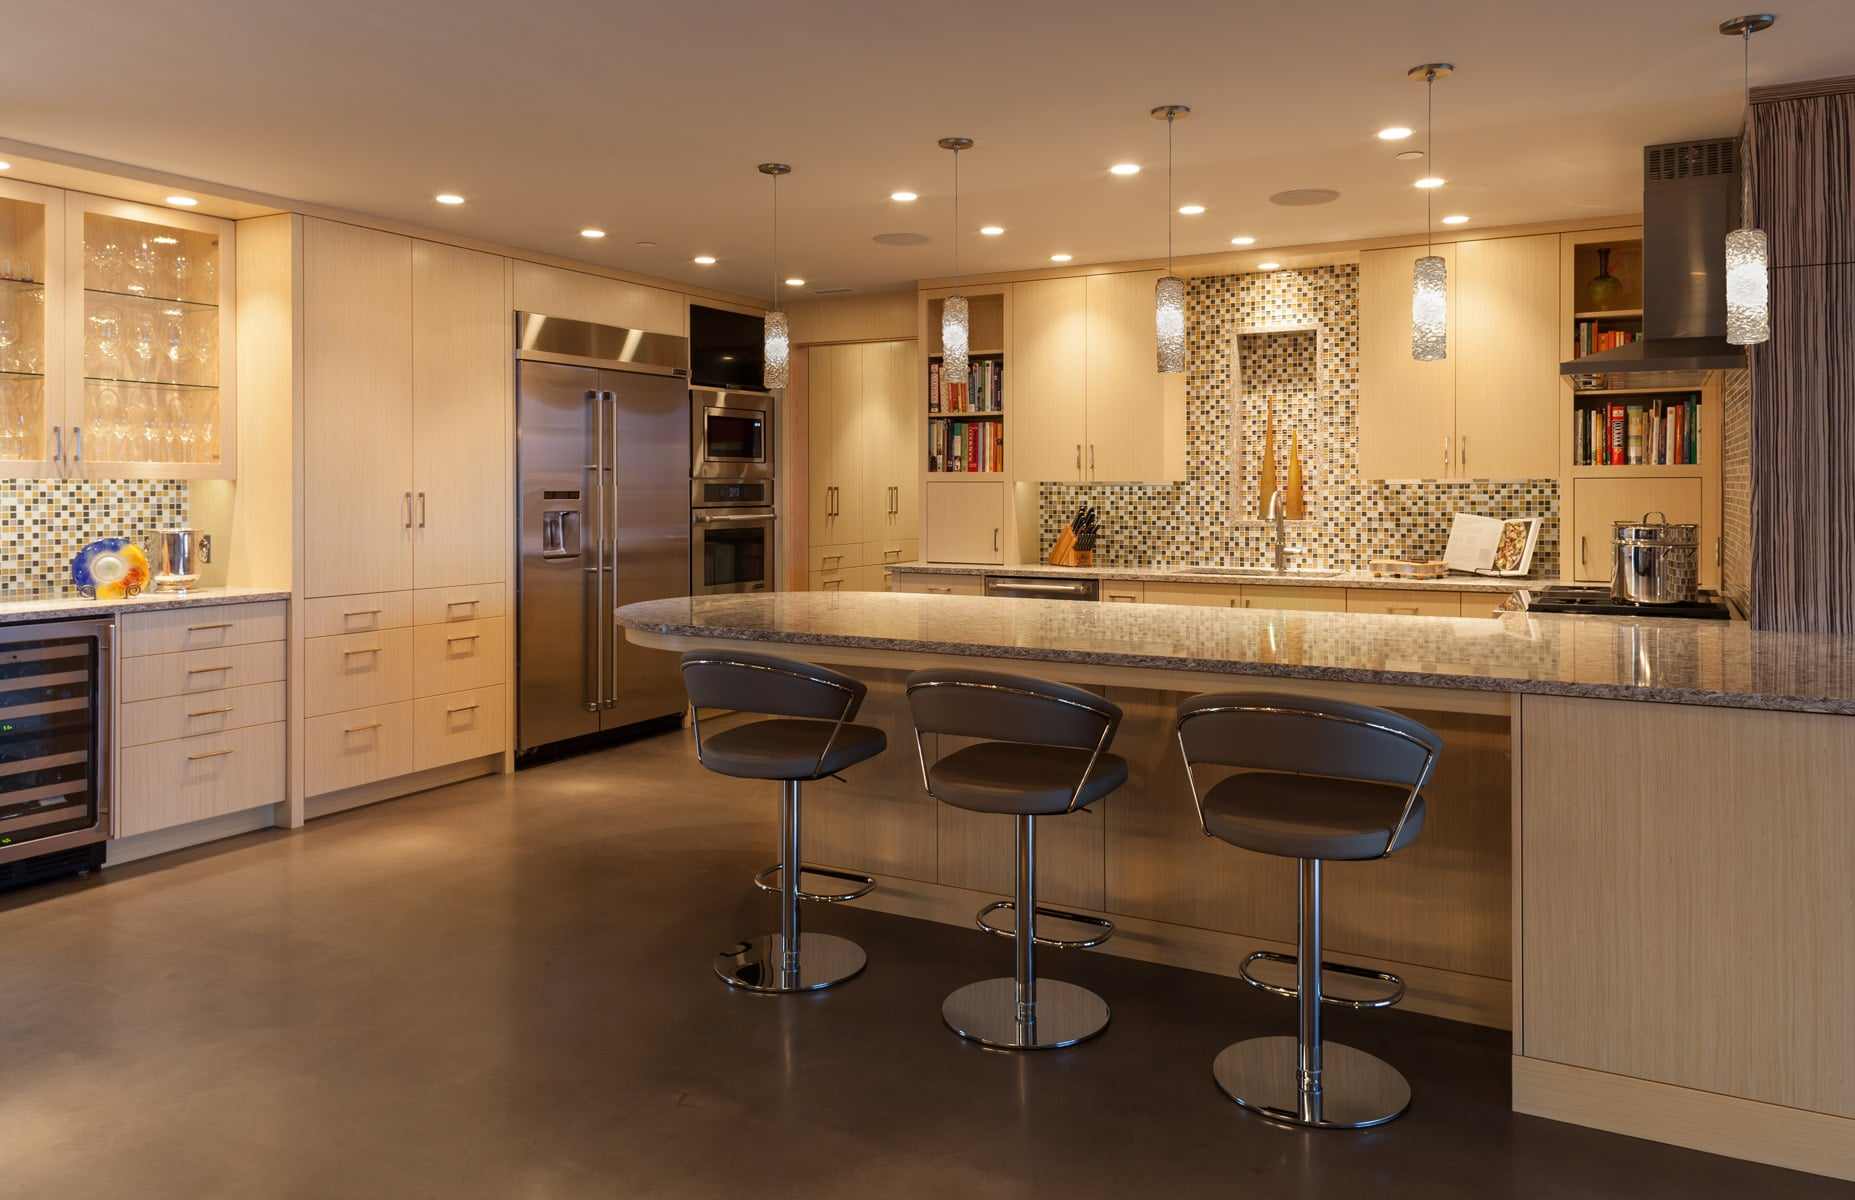 Gourmet kitchen interior designers minneapolis gourmet kitchen interior designers minneapolis - Kitchen design minneapolis ...